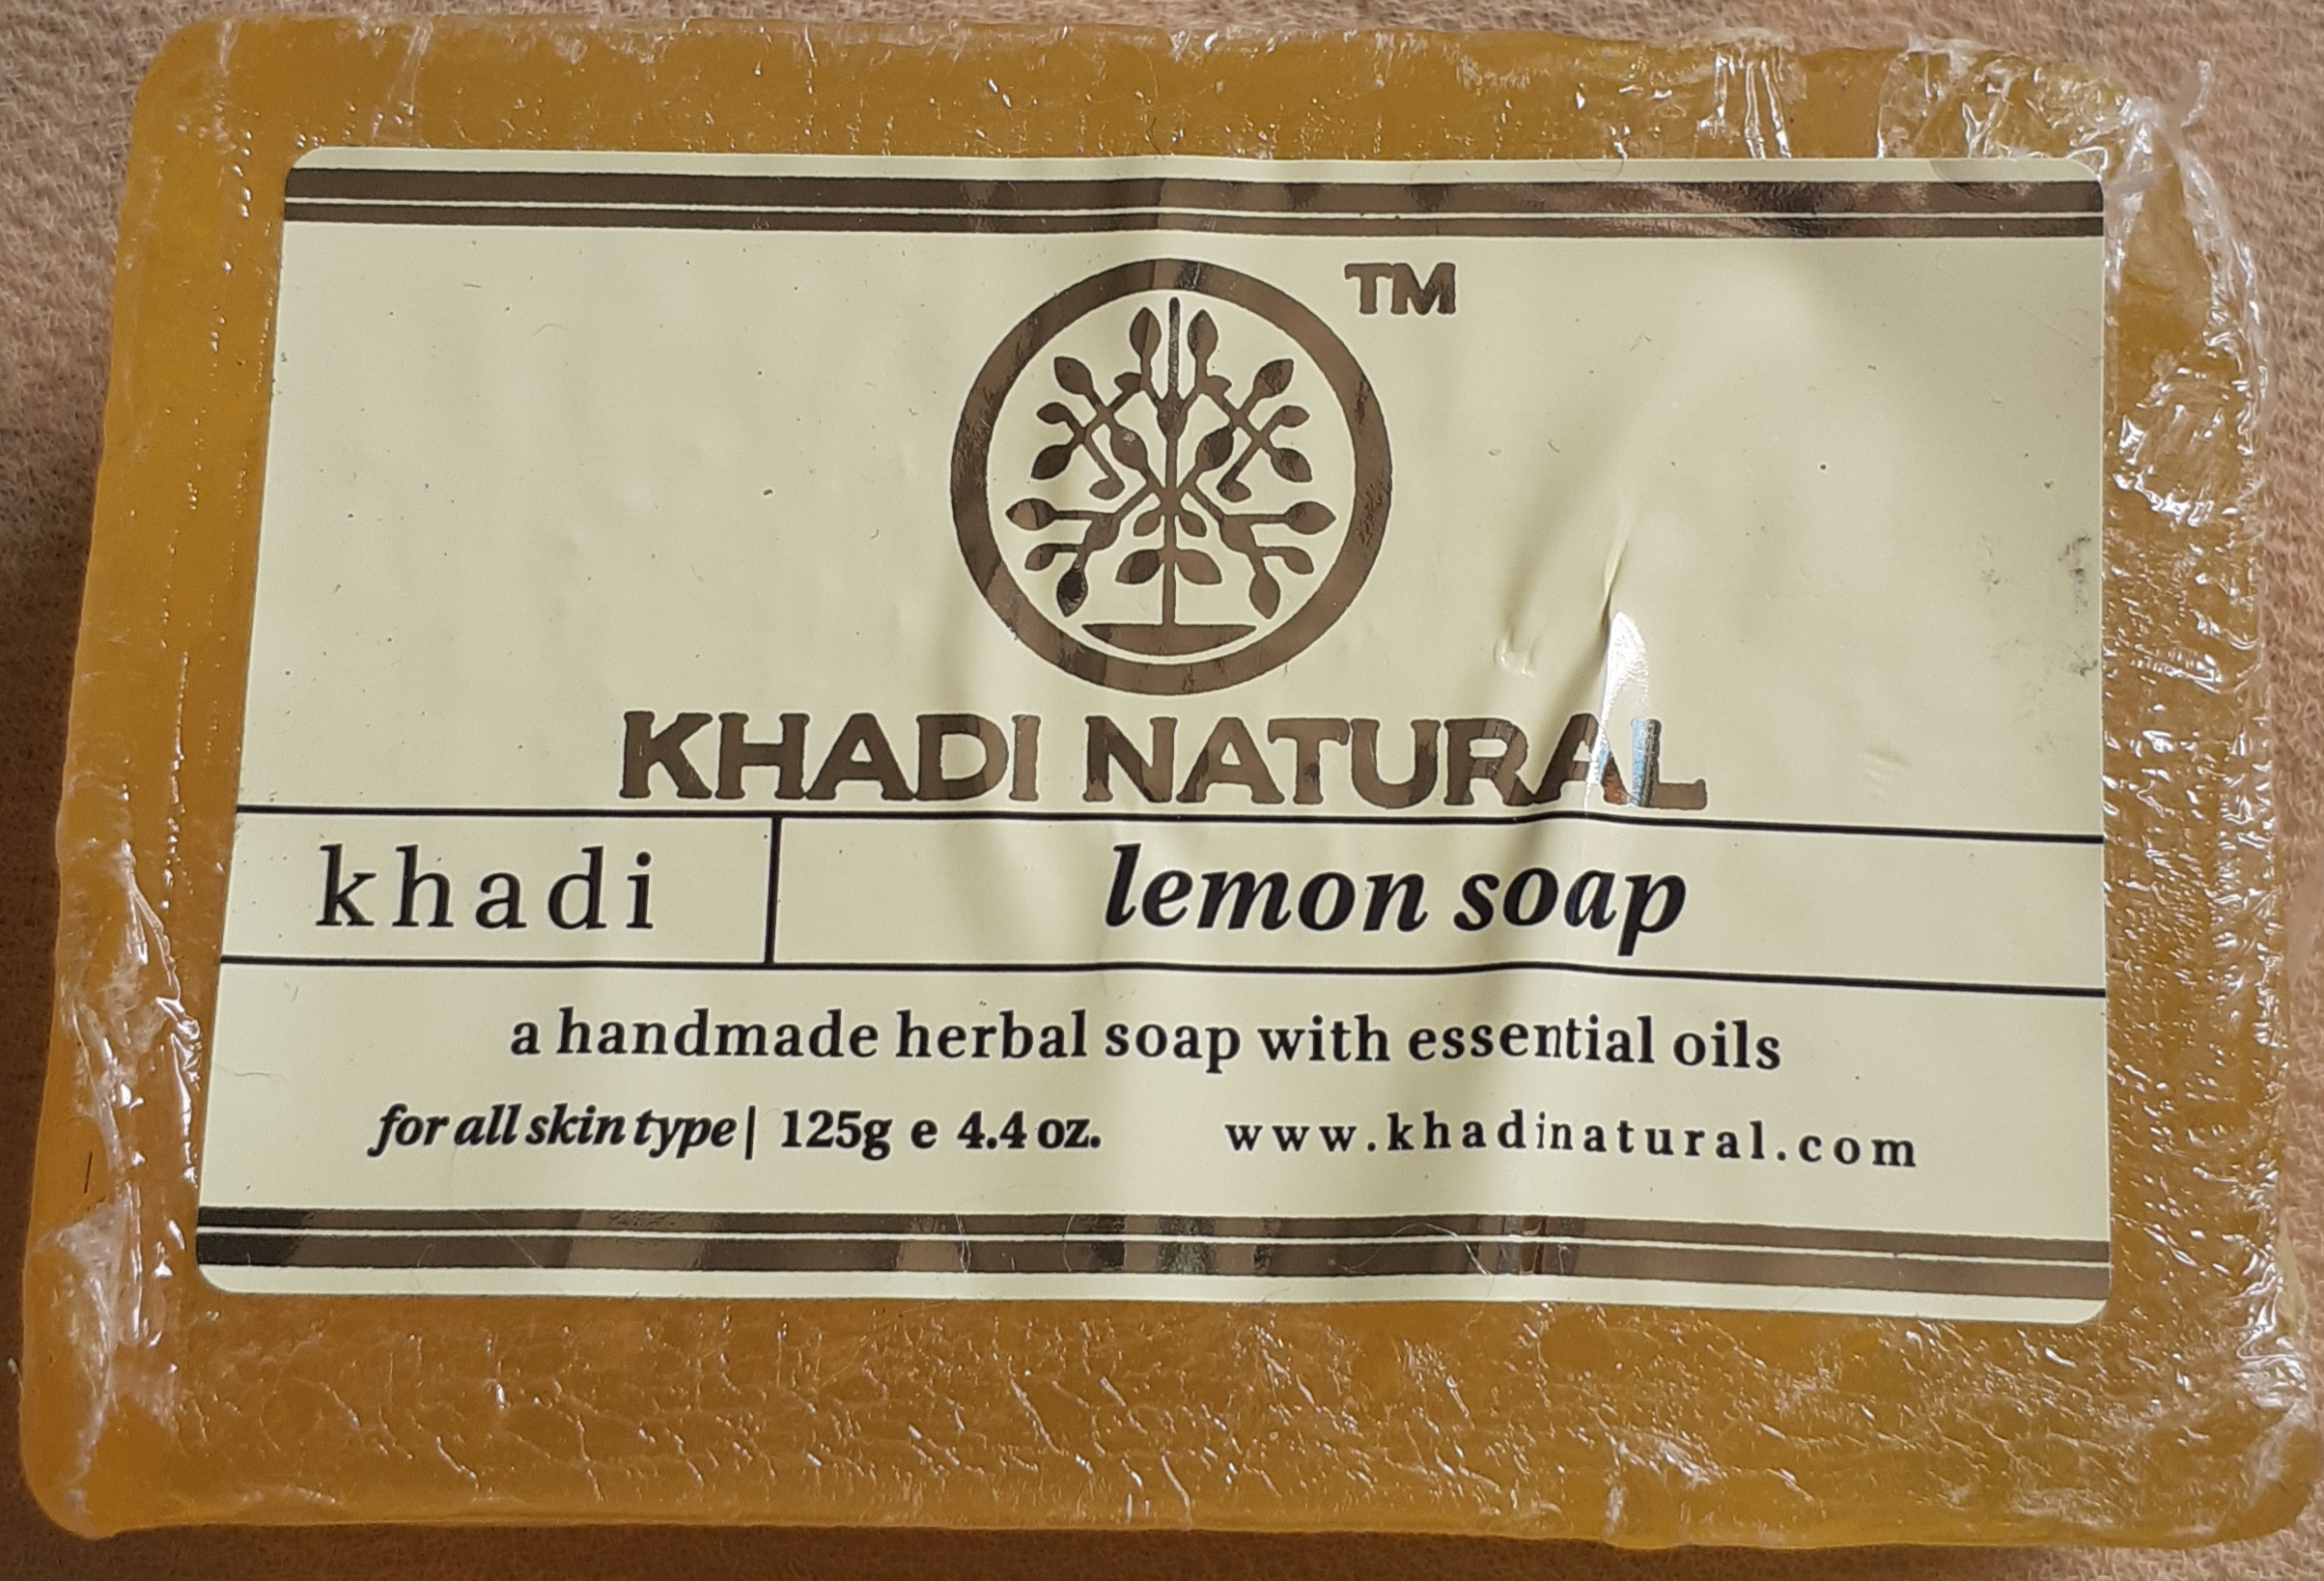 Khadi Natural Handmade Soap -Best Handmade Soap-By vaishali_0111